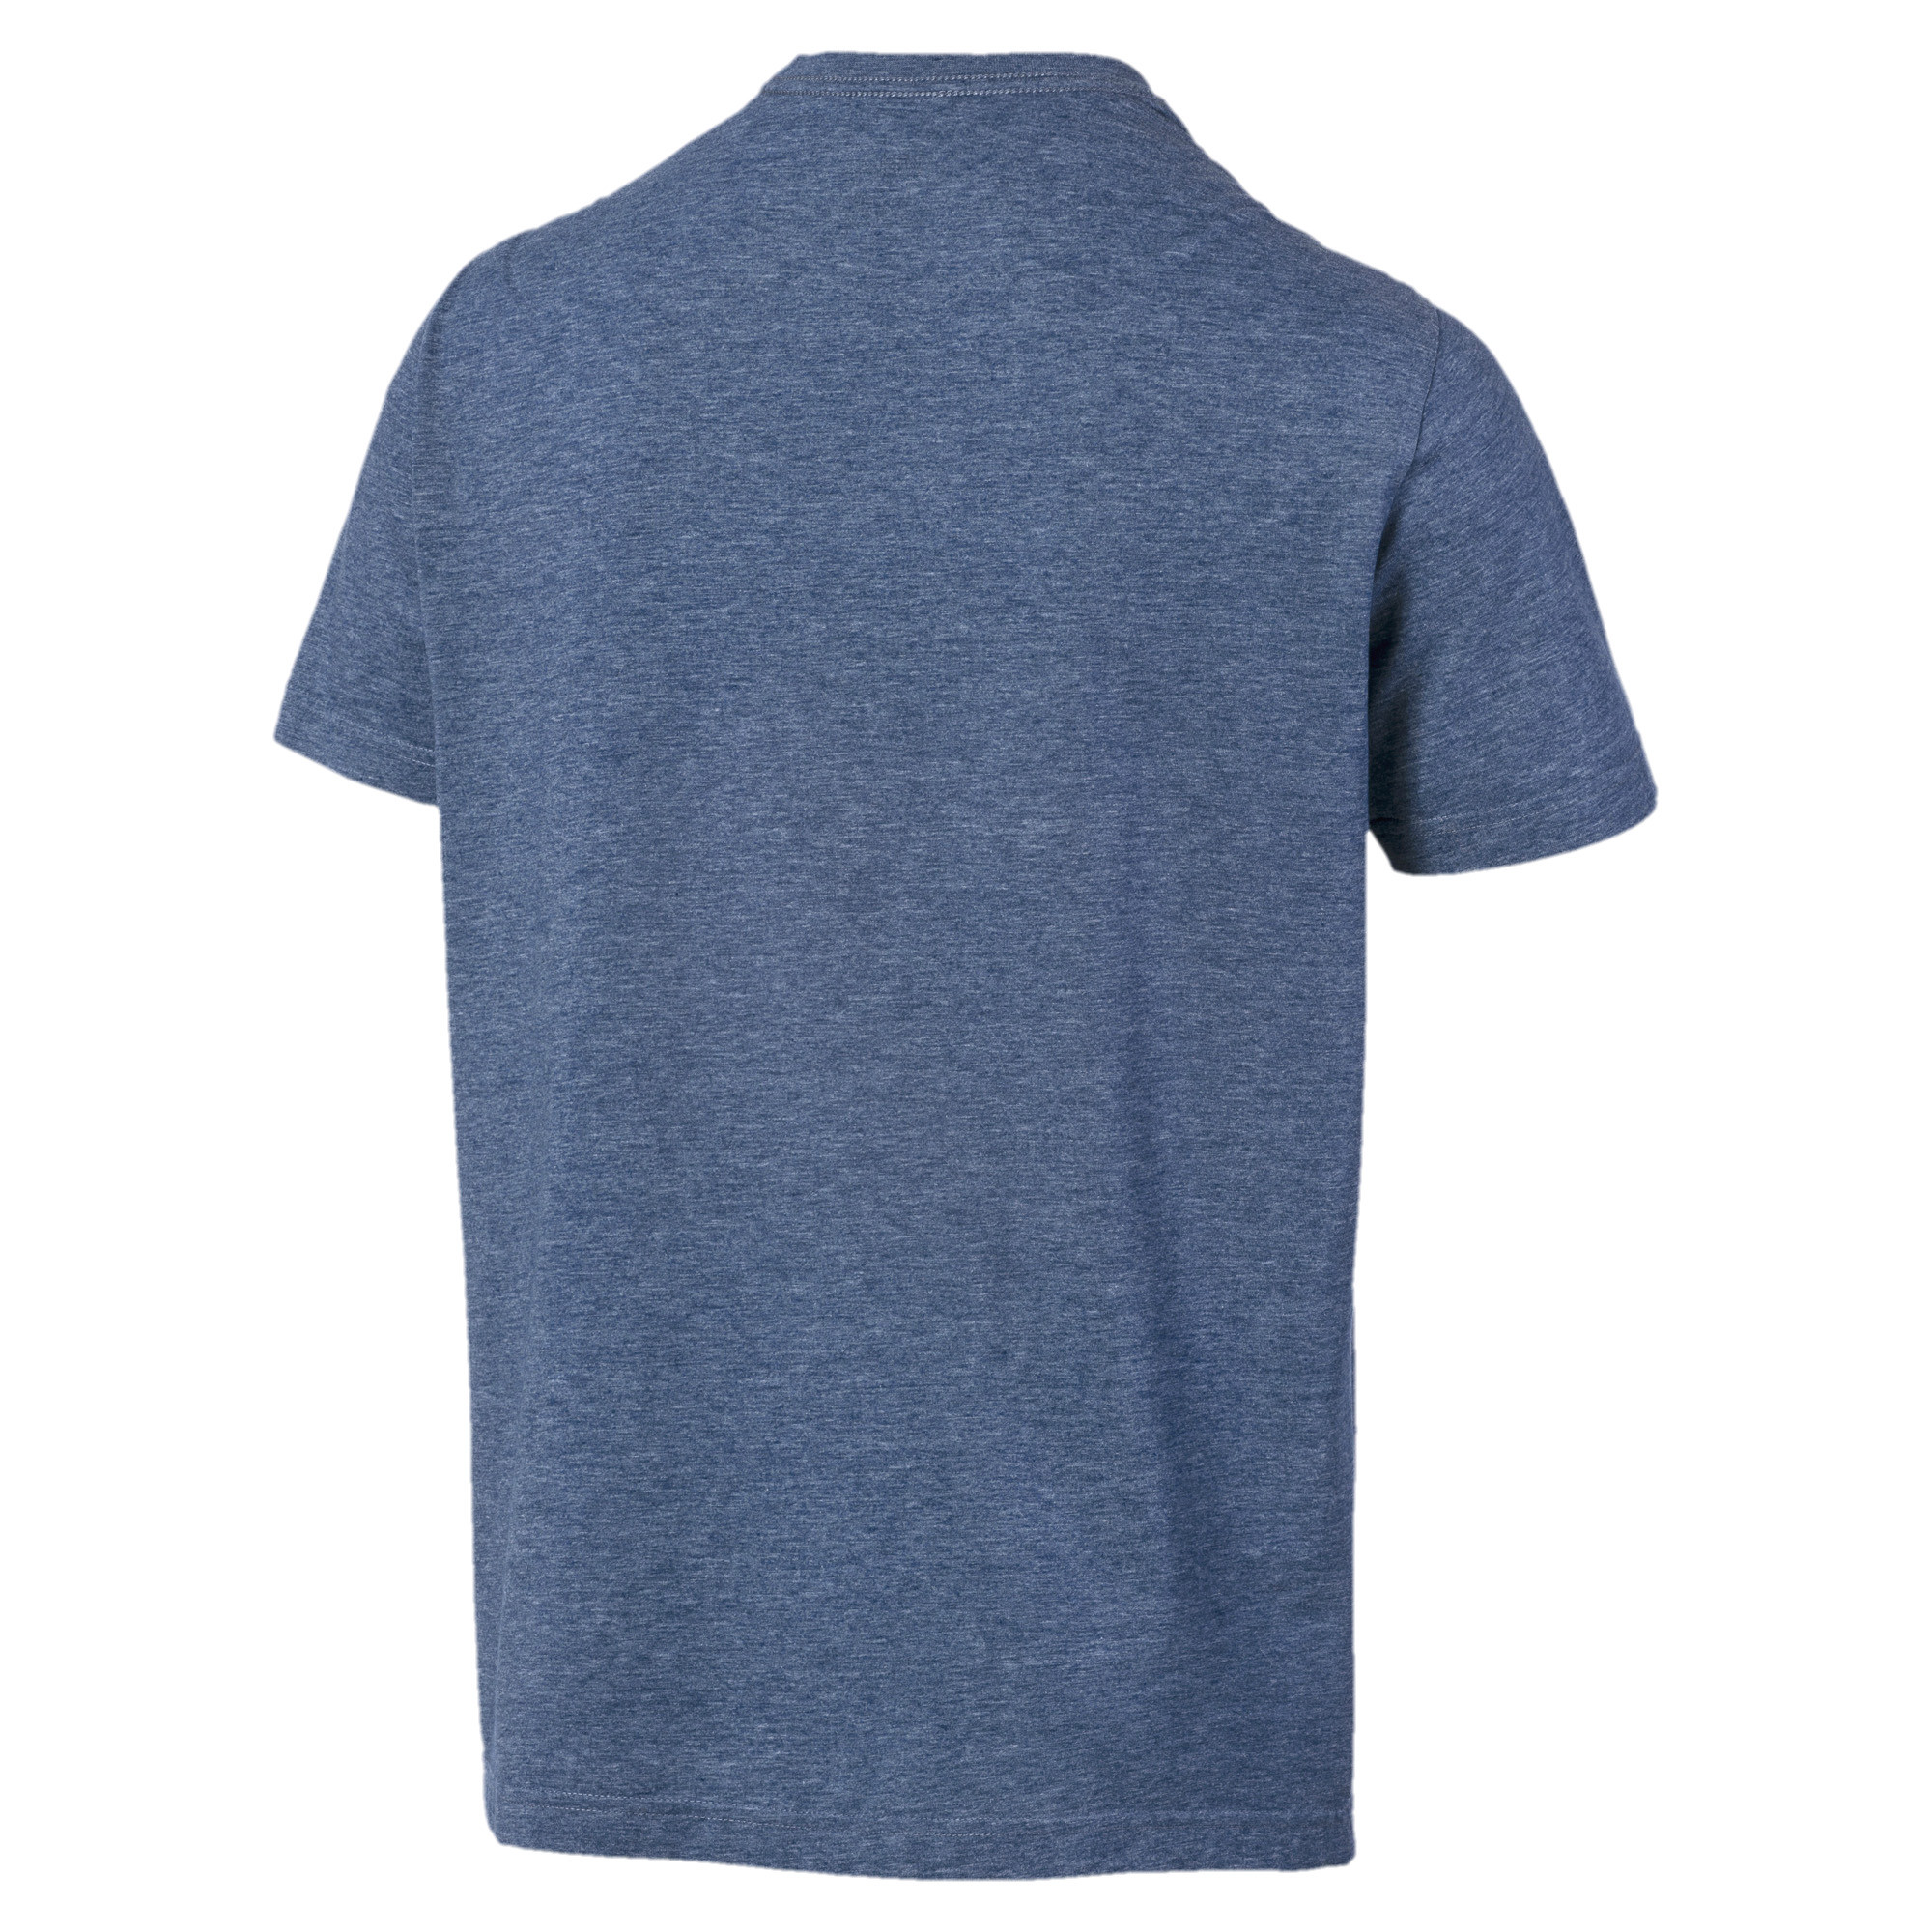 PUMA-Essentials-Heather-Tee-Men-Tee-Basics thumbnail 12